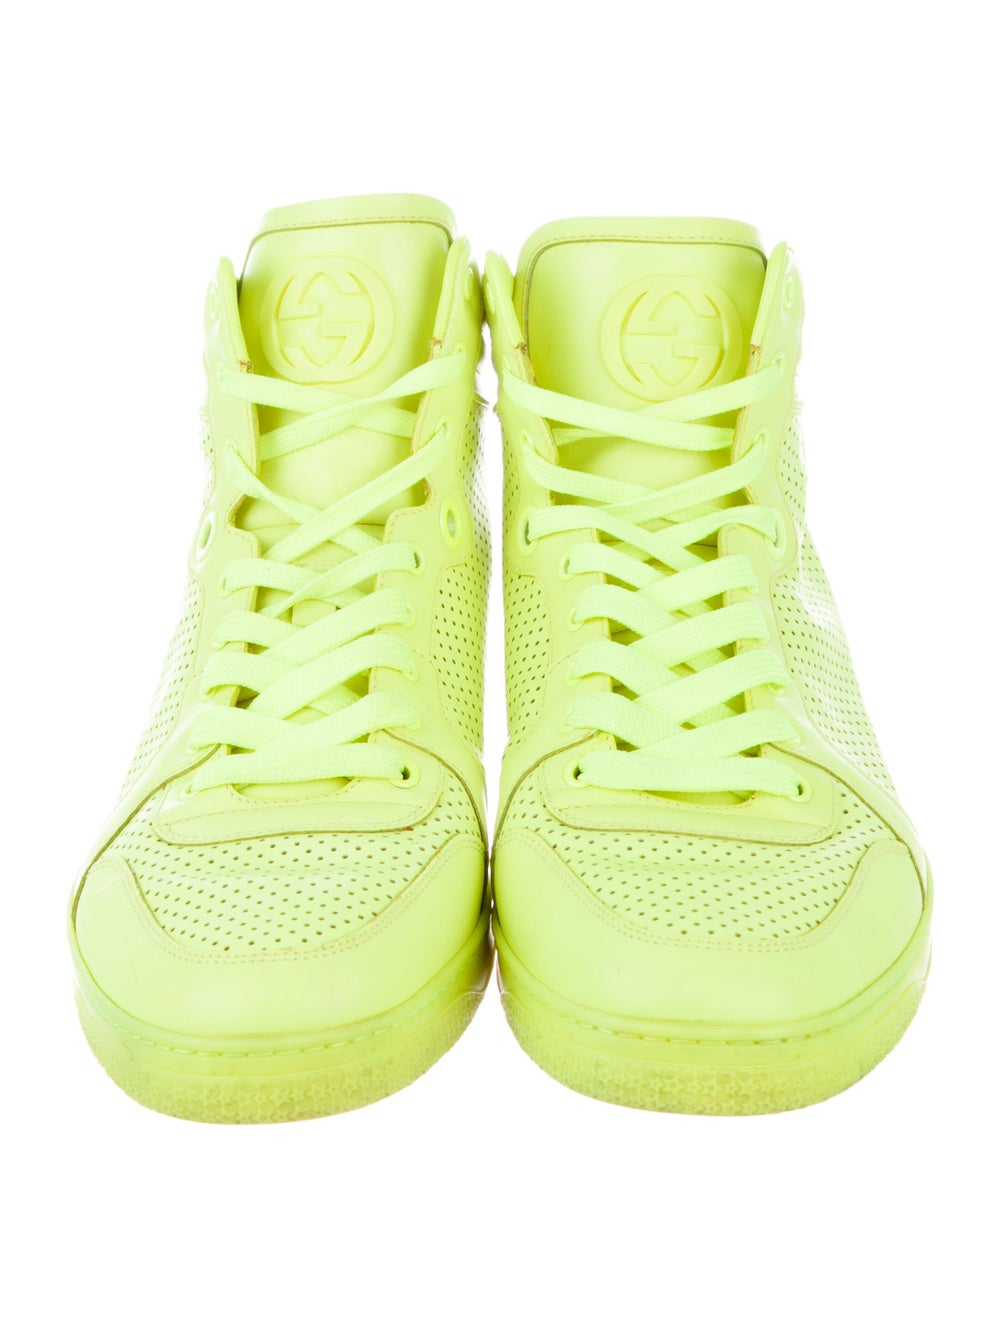 Gucci Leather Sneakers Green - image 3